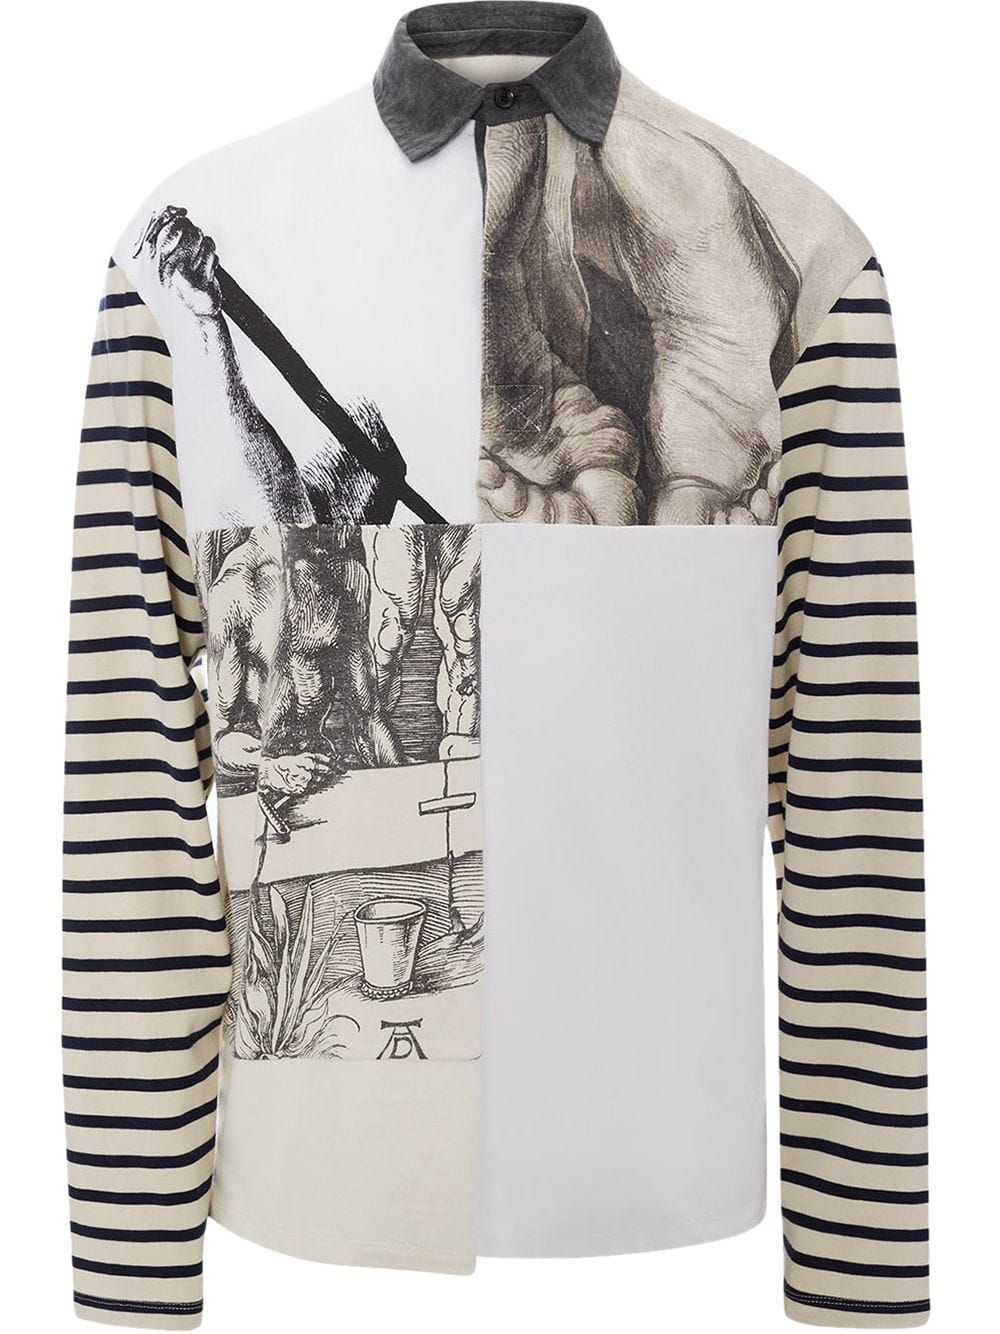 b4982429 J.W.ANDERSON JW ANDERSON OFF- WHITE DURER PRINTS RUGBY JERSEY LONG SLEEVE  POLO SHIRT. #j.w.anderson #cloth